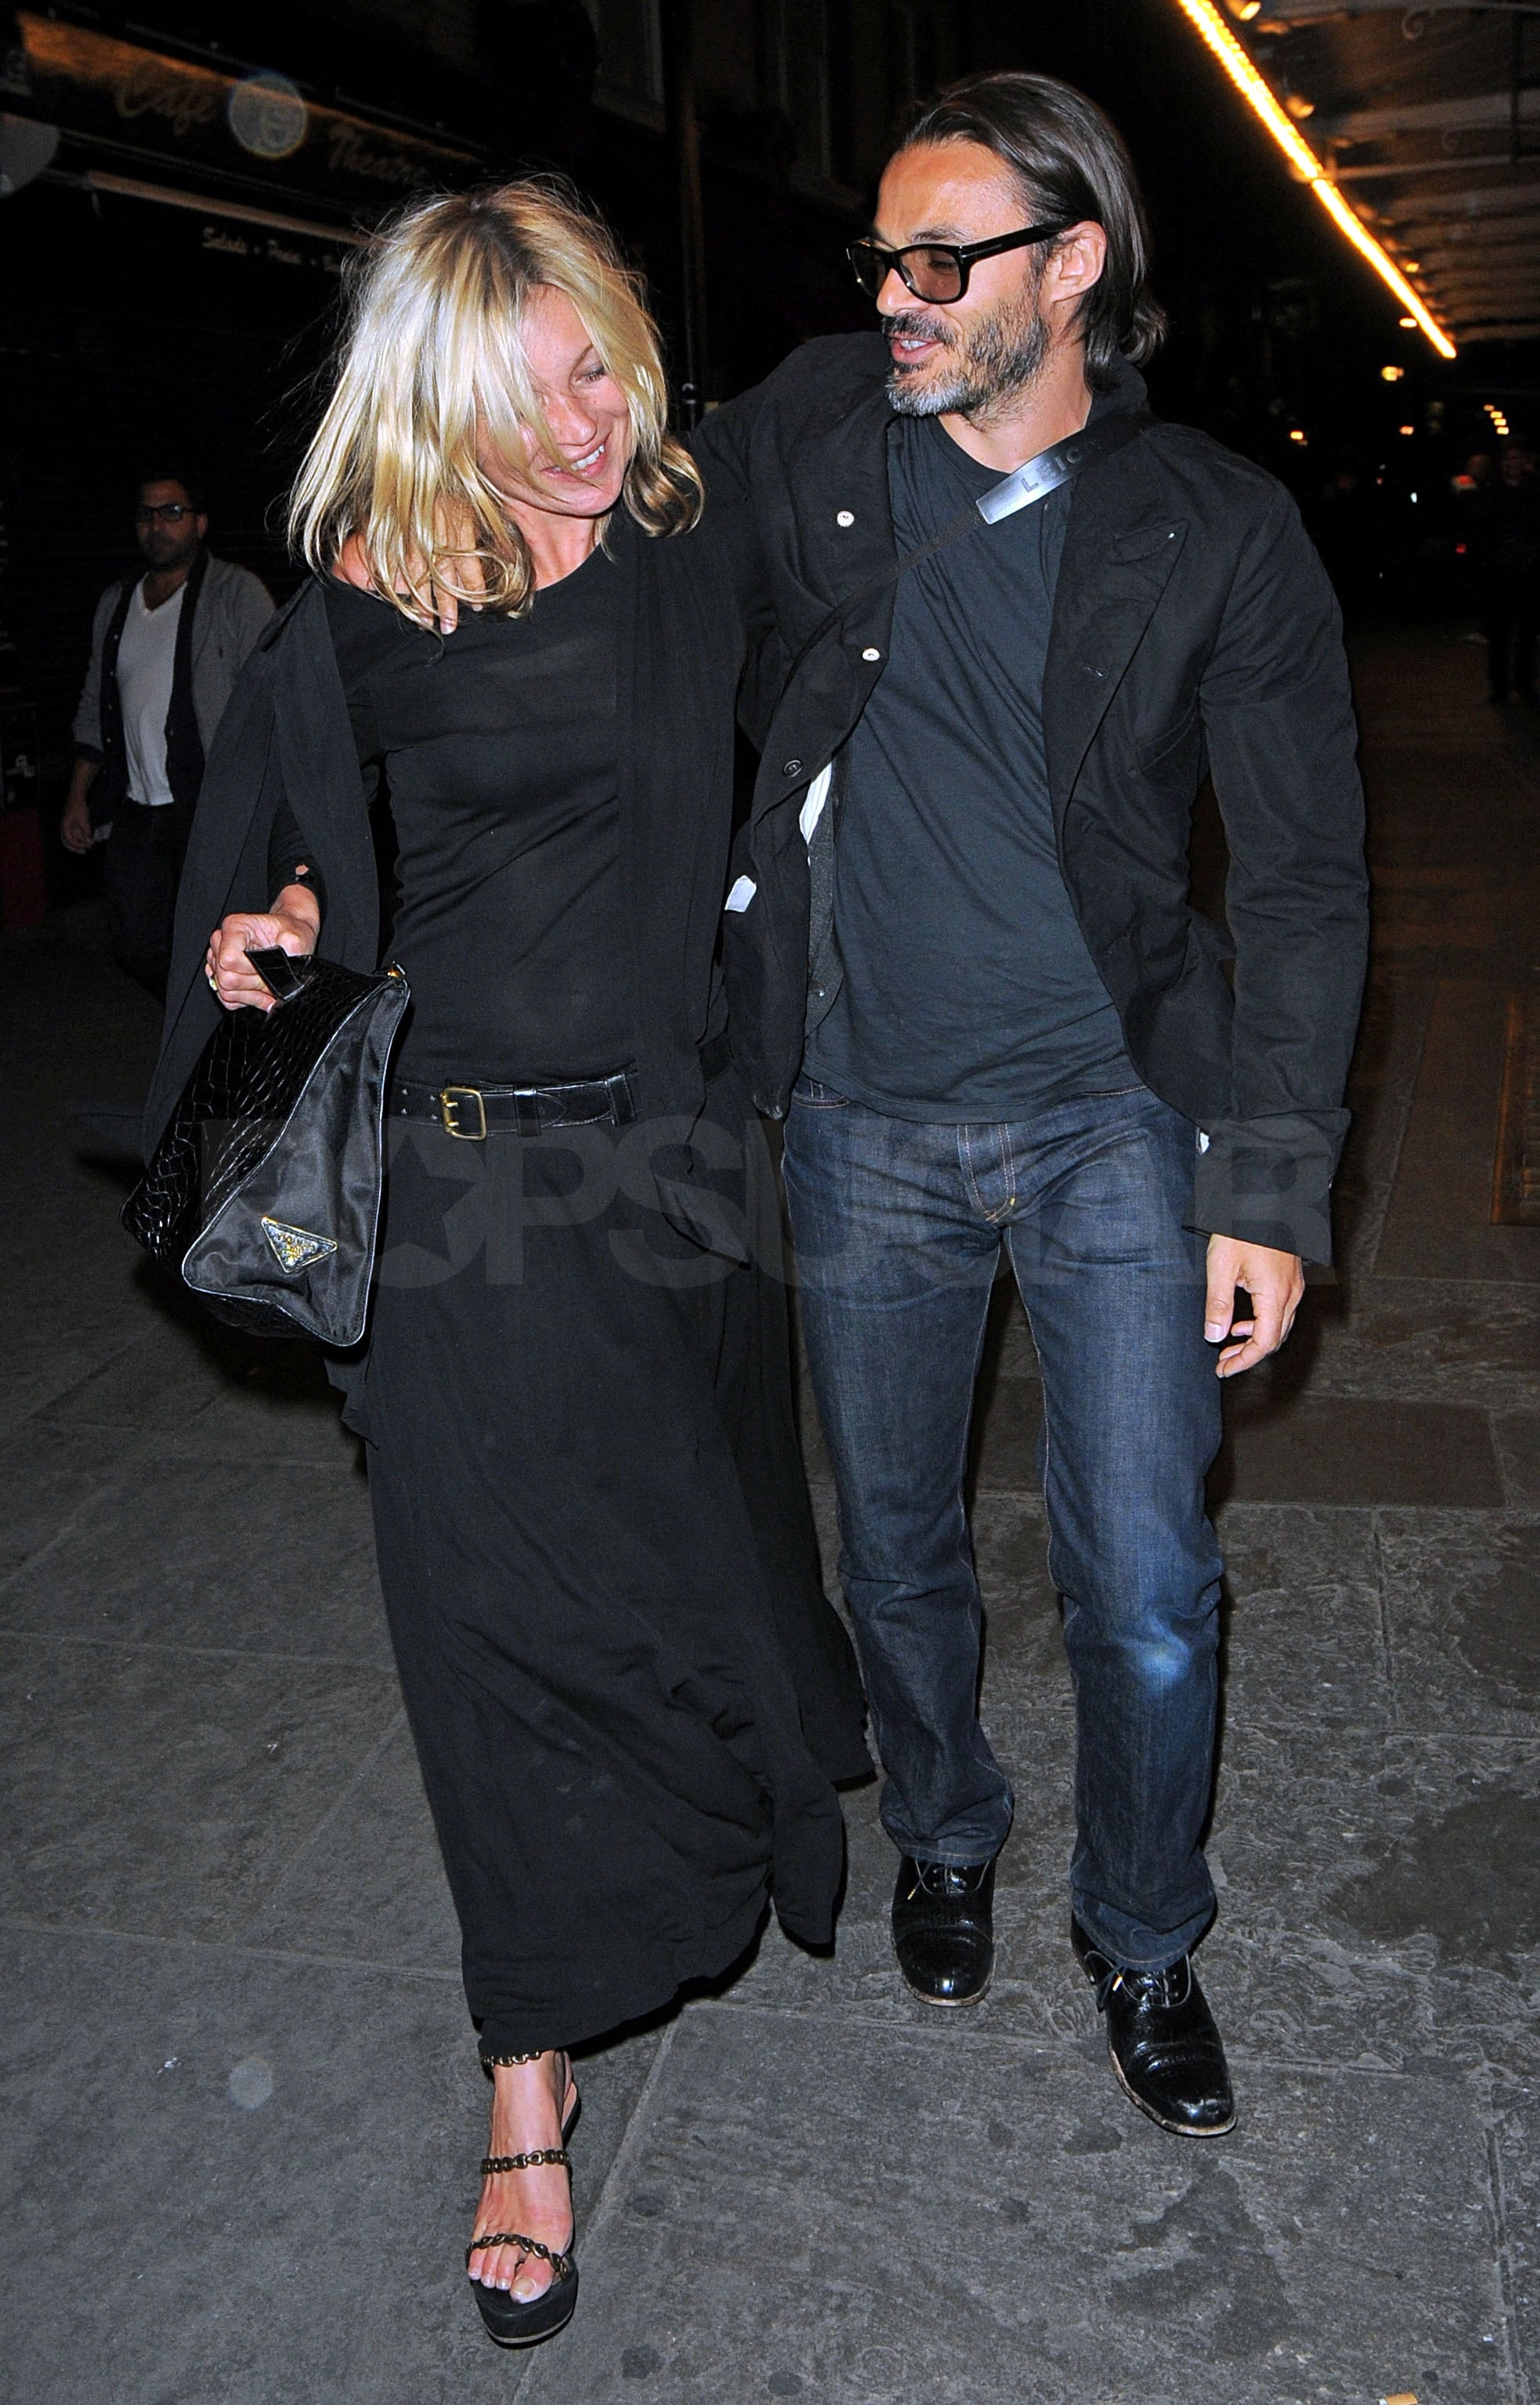 e2061ccb4212 Photos of Kate Moss and Mario Sorrenti Leaving London's J Sheekey ...